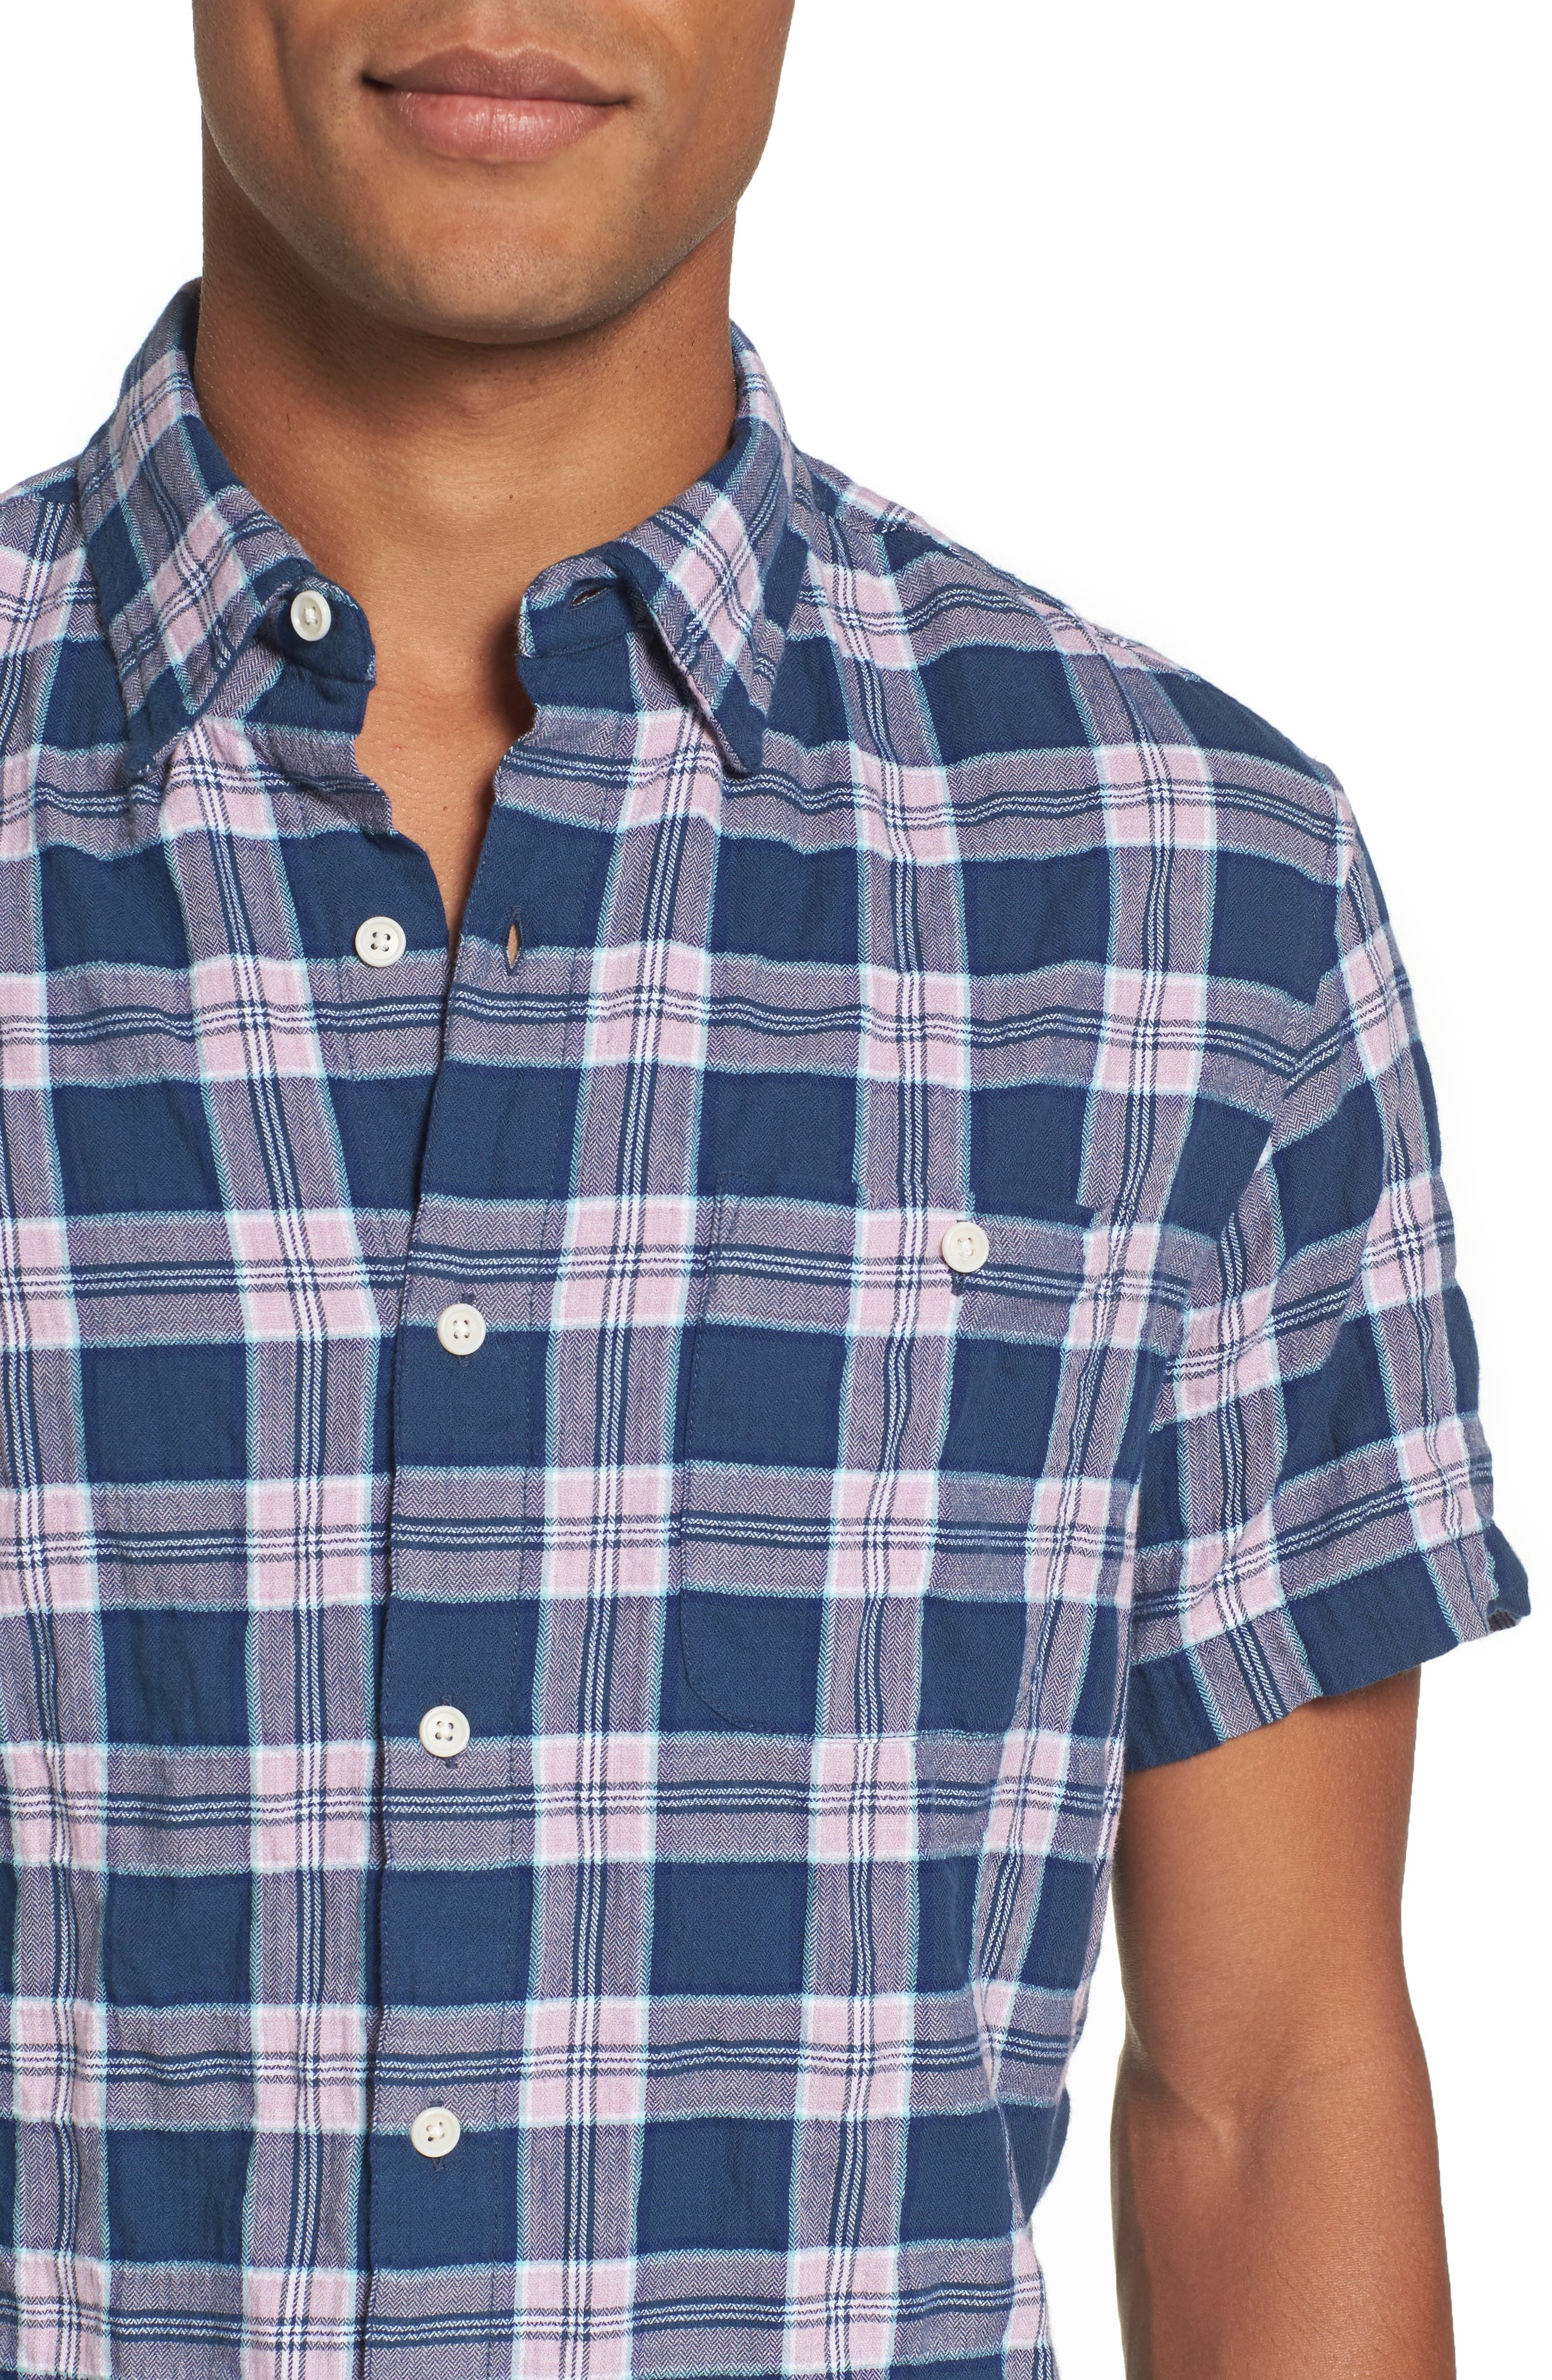 Riviera Slim Fit Plaid Woven Shirt,                             Alternate thumbnail 4, color,                             Crinkle Blue Pine Plaid